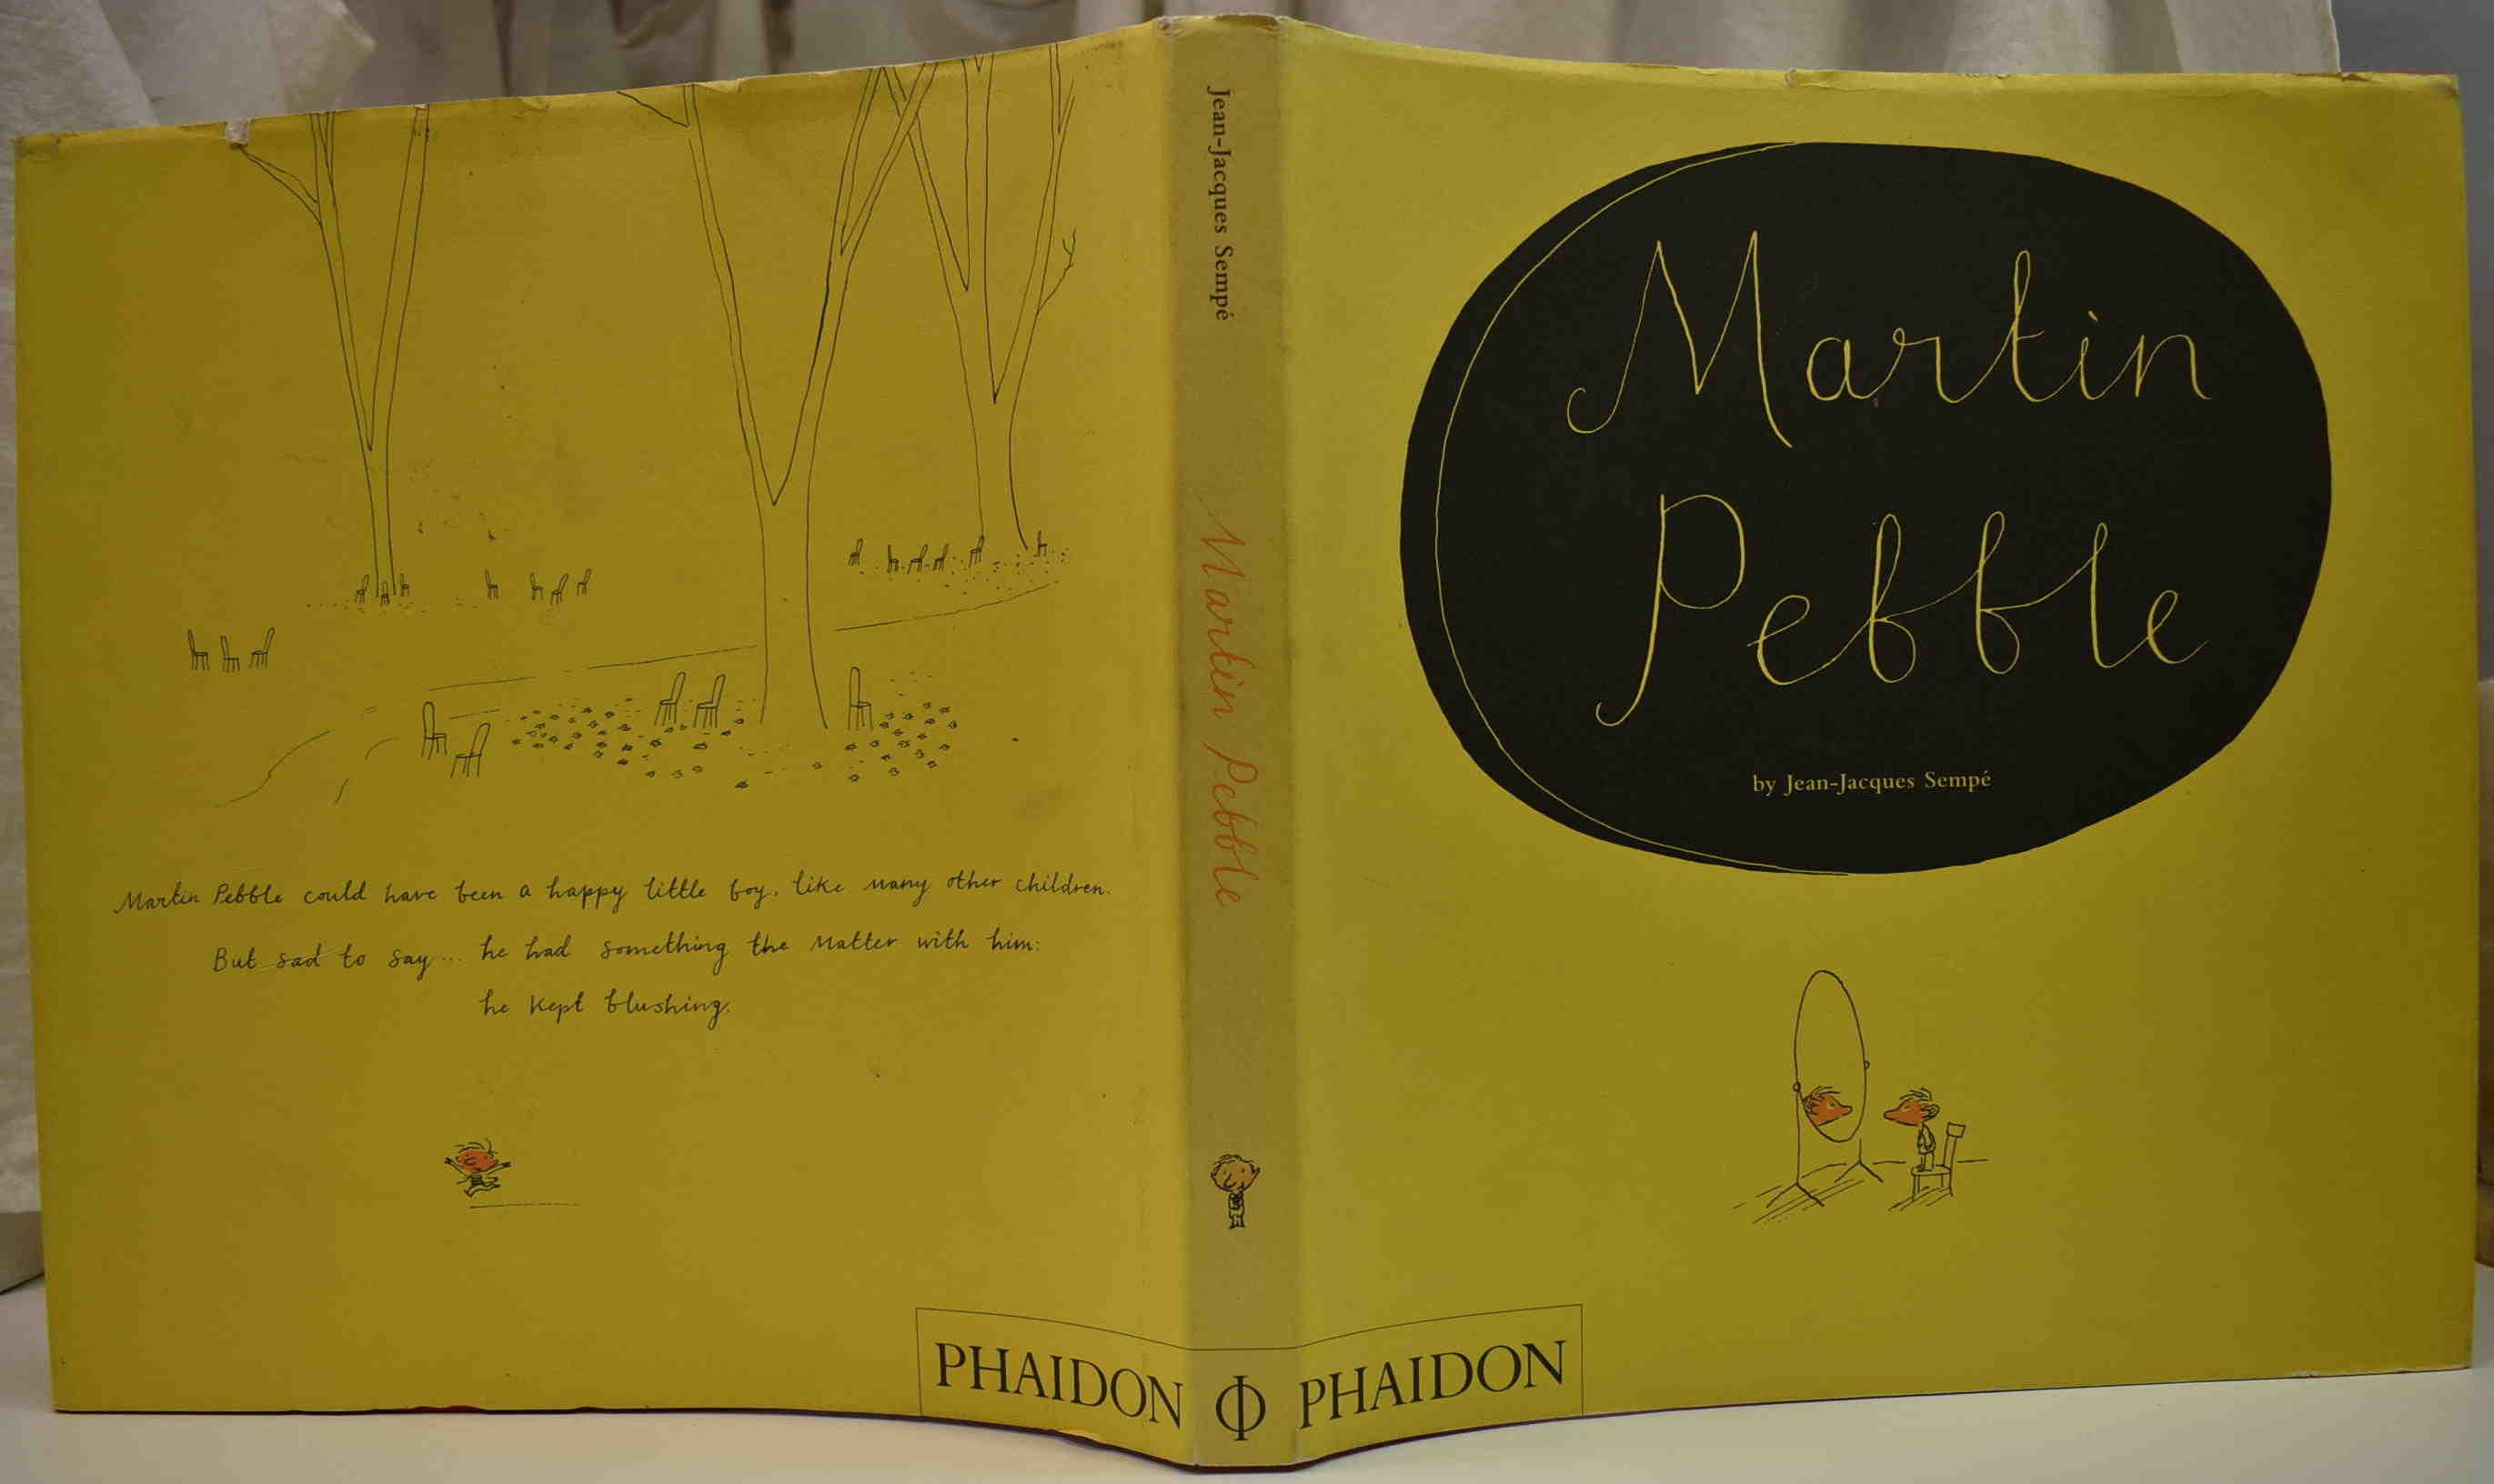 Details about 2006 JEAN-JACQUES SEMPE MARTIN PEBBLE French Classic Story VG  HCDJ